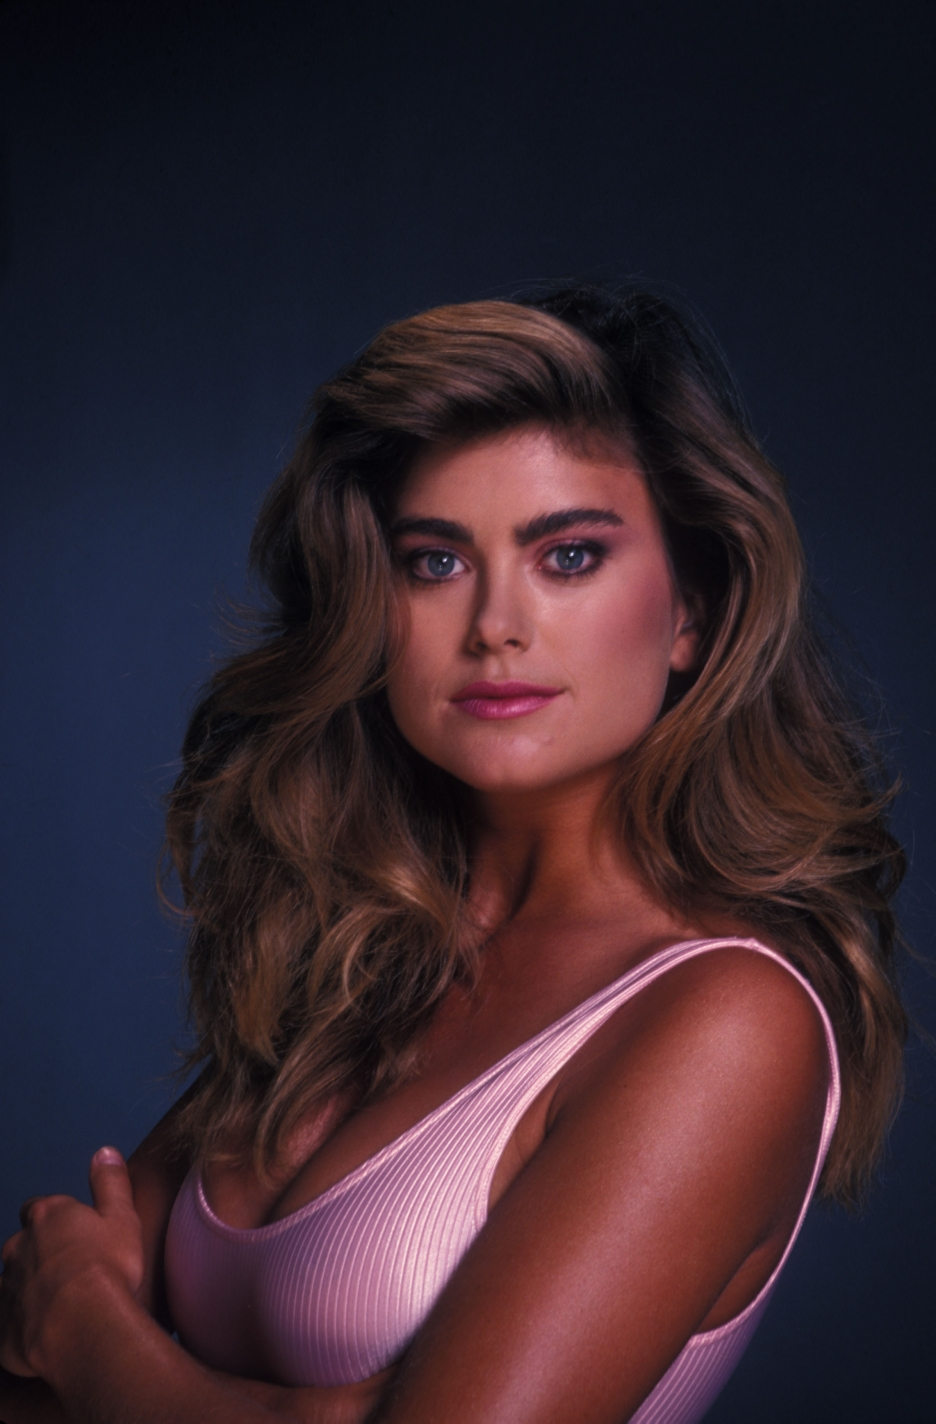 Photos Kathy Ireland nude (23 photos), Tits, Cleavage, Boobs, butt 2017